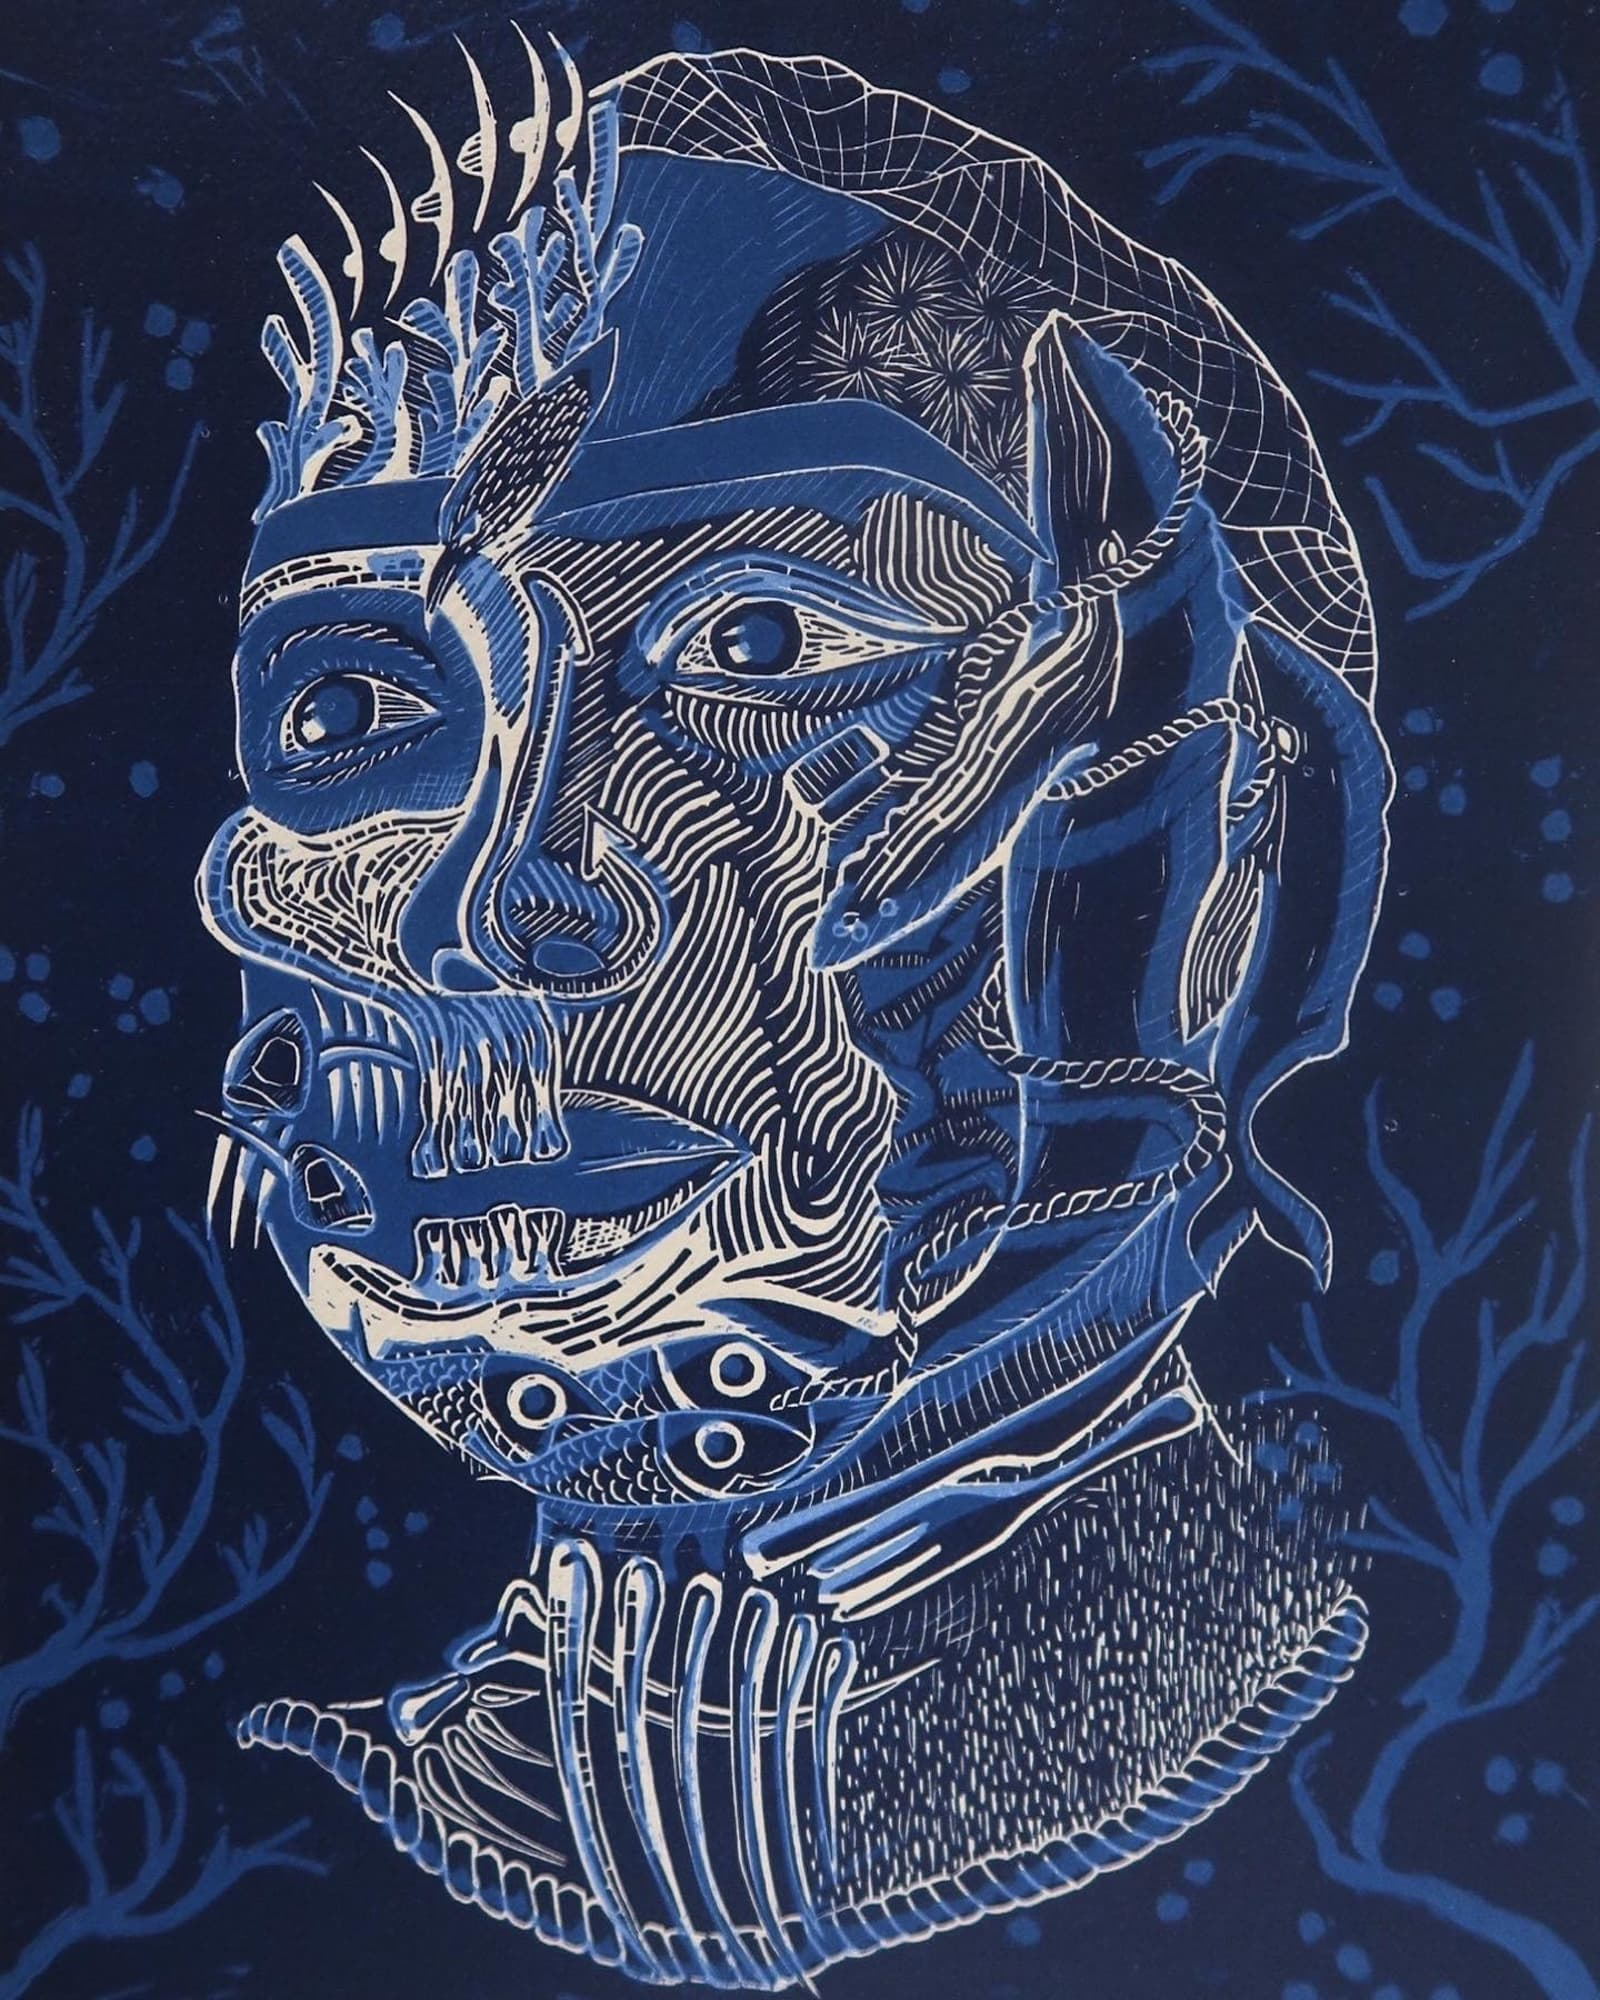 Linocut of a face in blue and white, a work by Chayna Yoshida